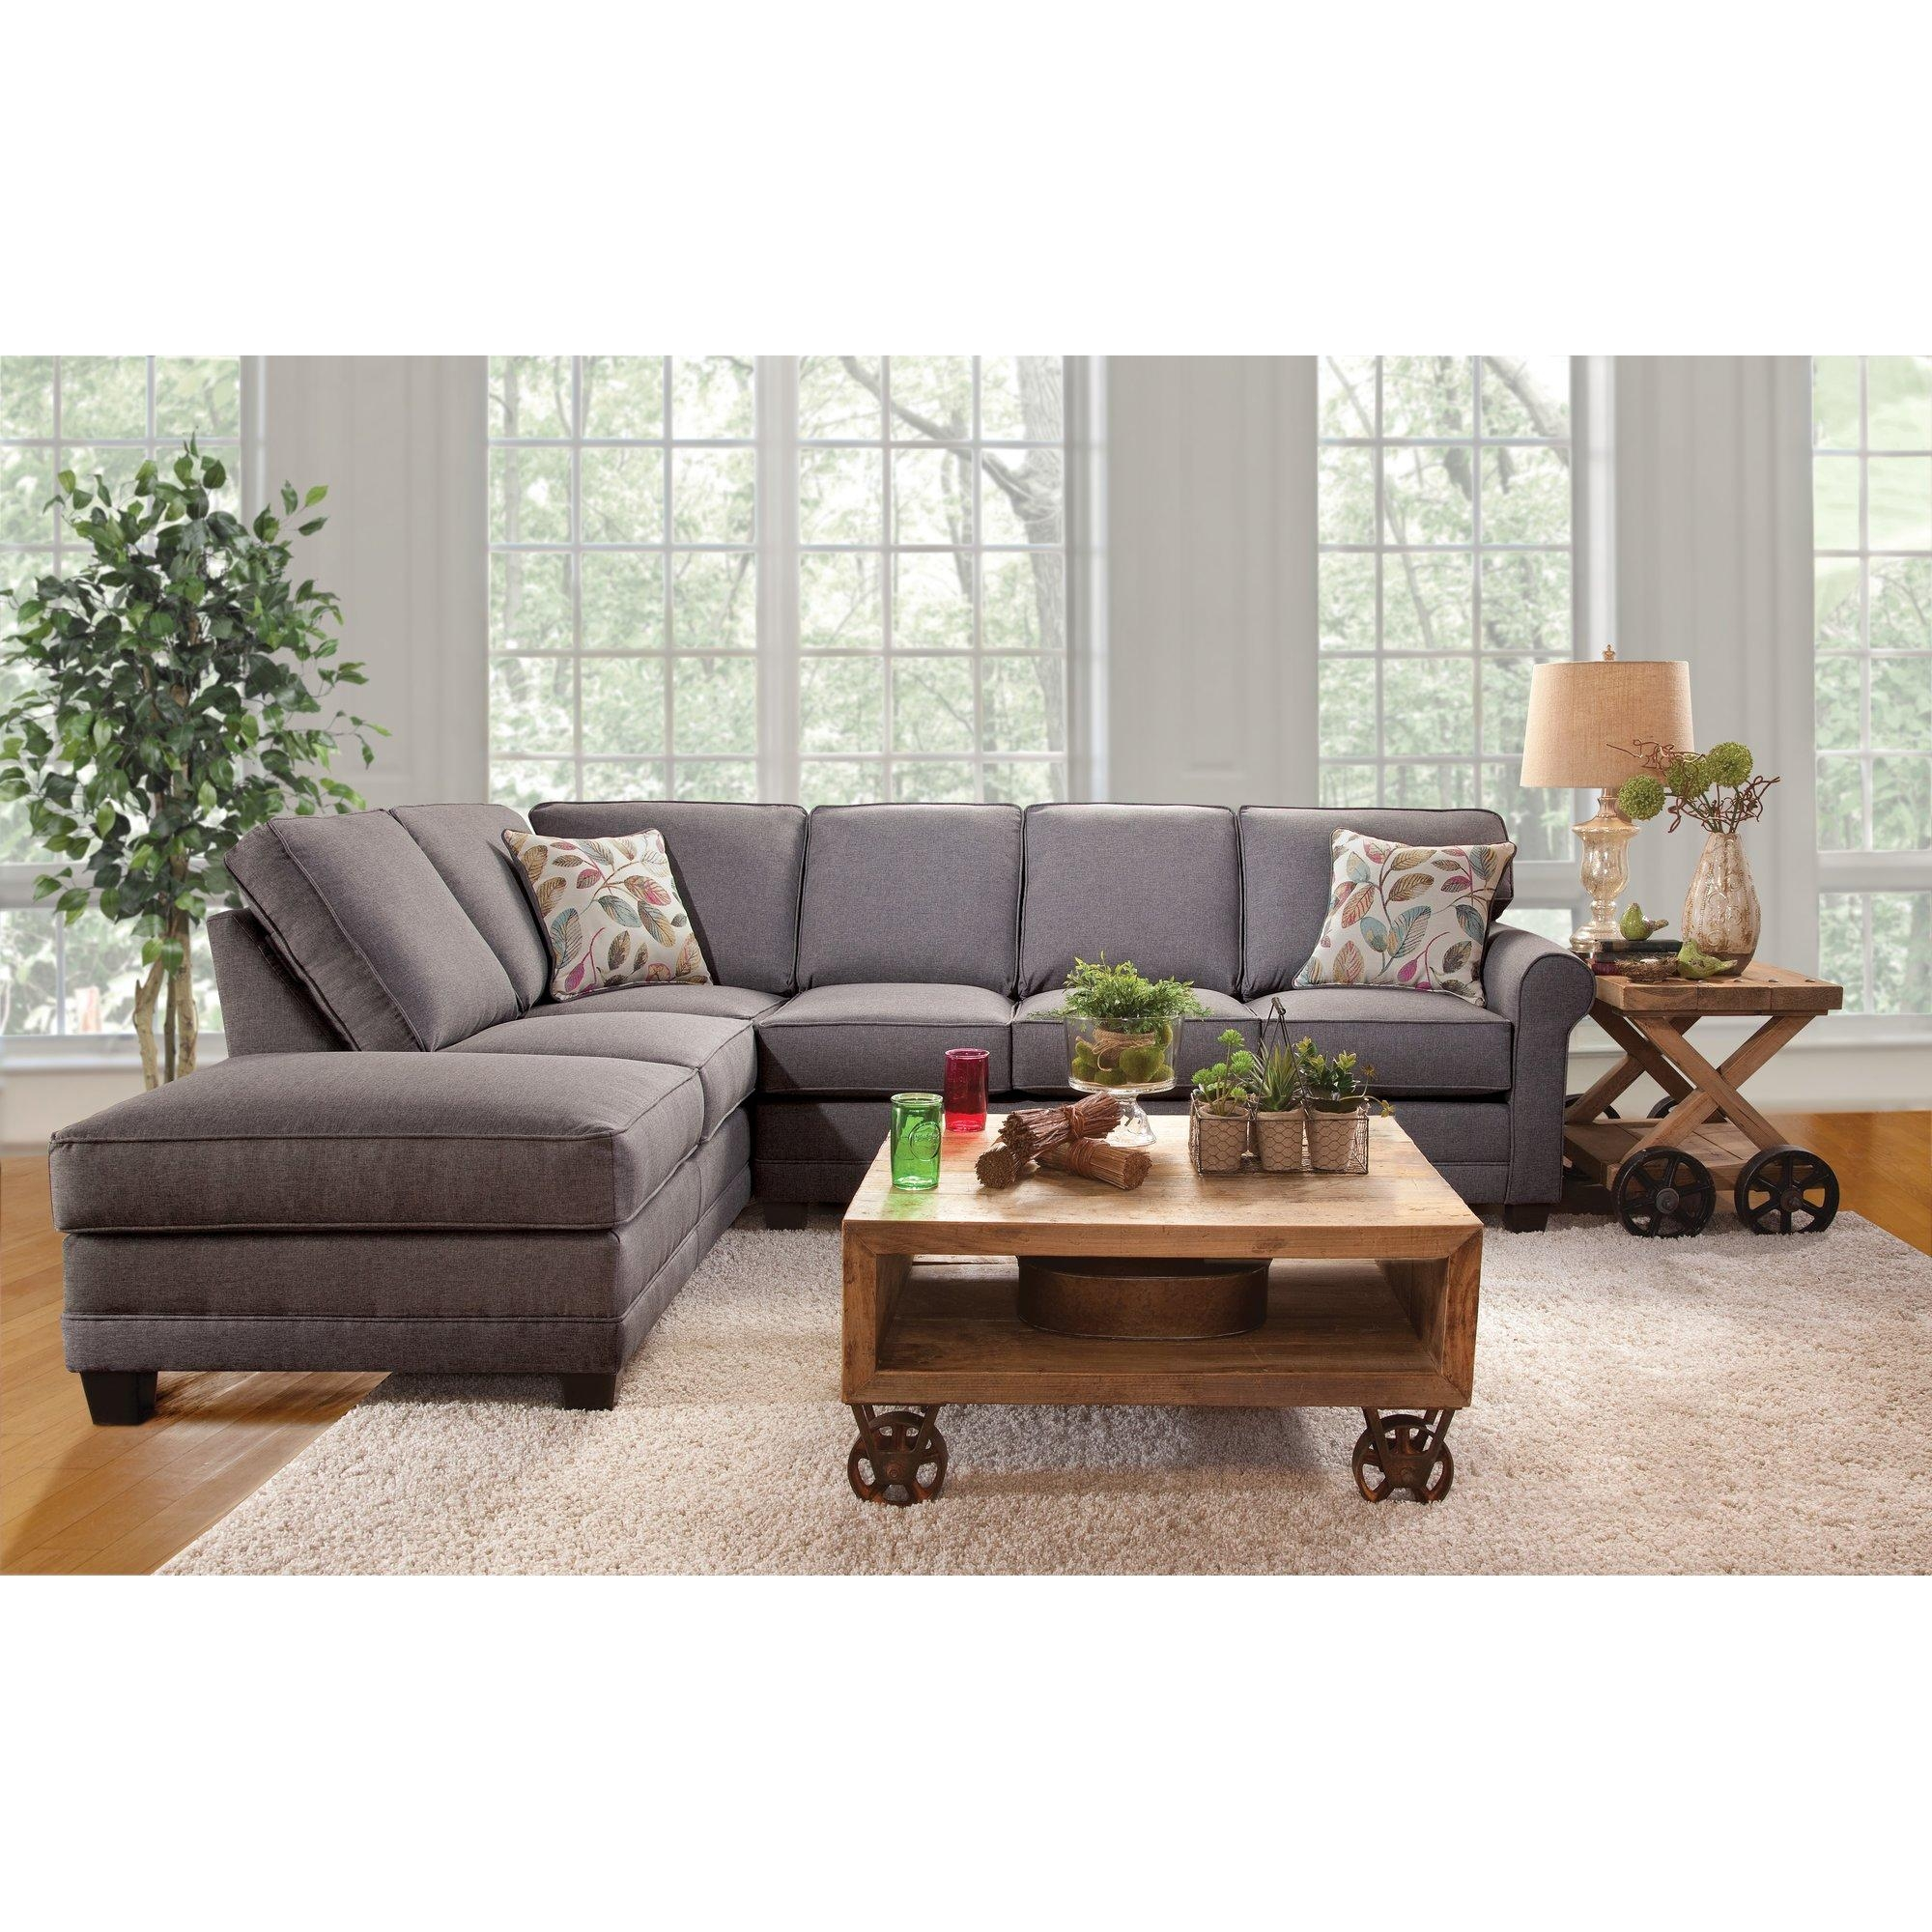 Serta Sectional Sofa Reviews | Tehranmix Decoration Throughout Serta Sectional (View 3 of 20)